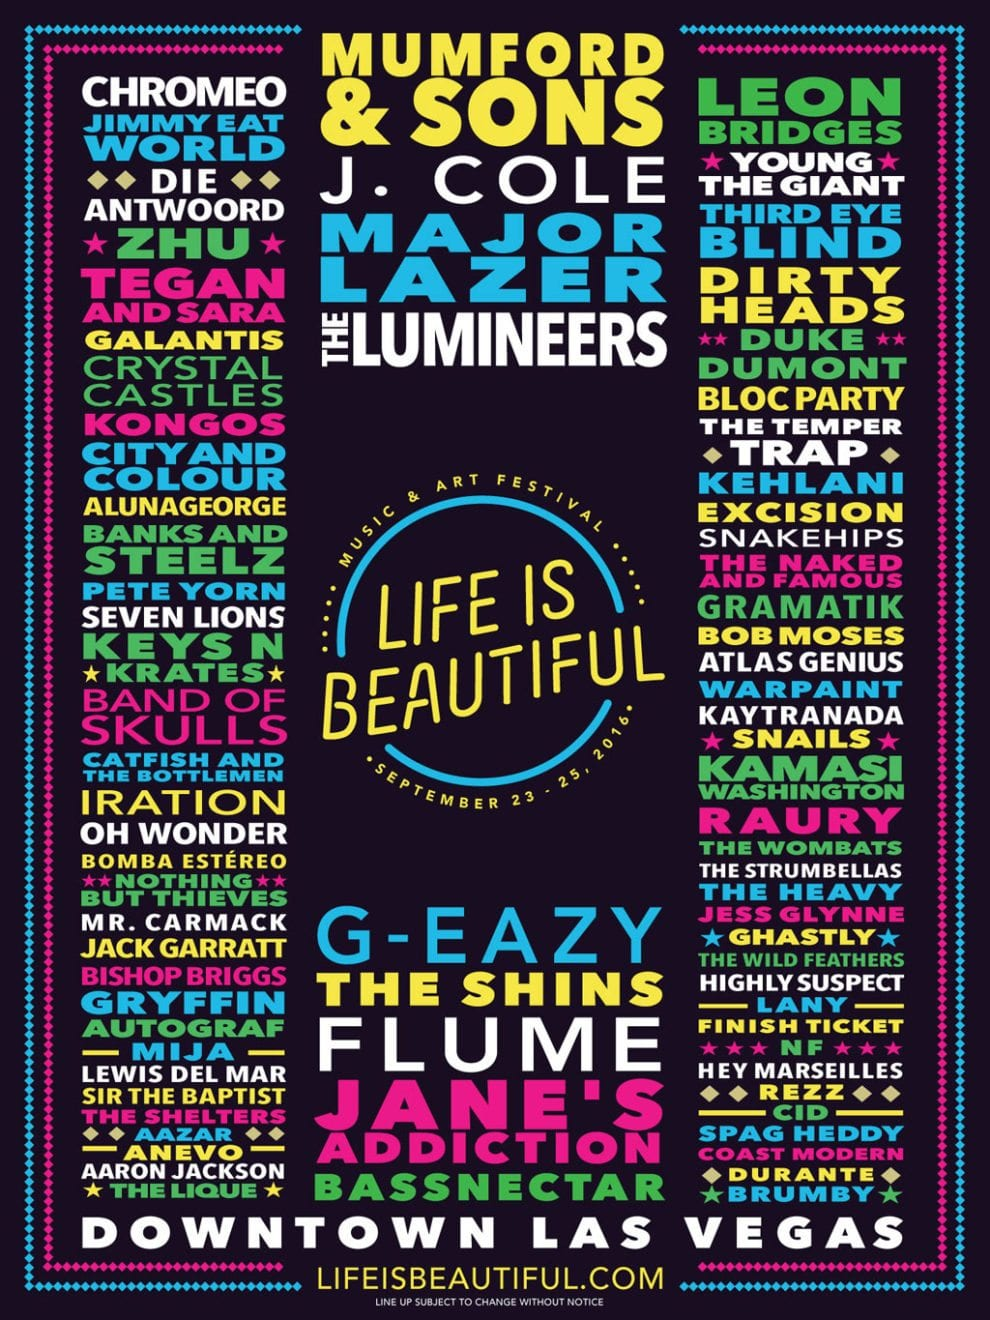 Life is Beautiful Festival 2016 Festival Poster